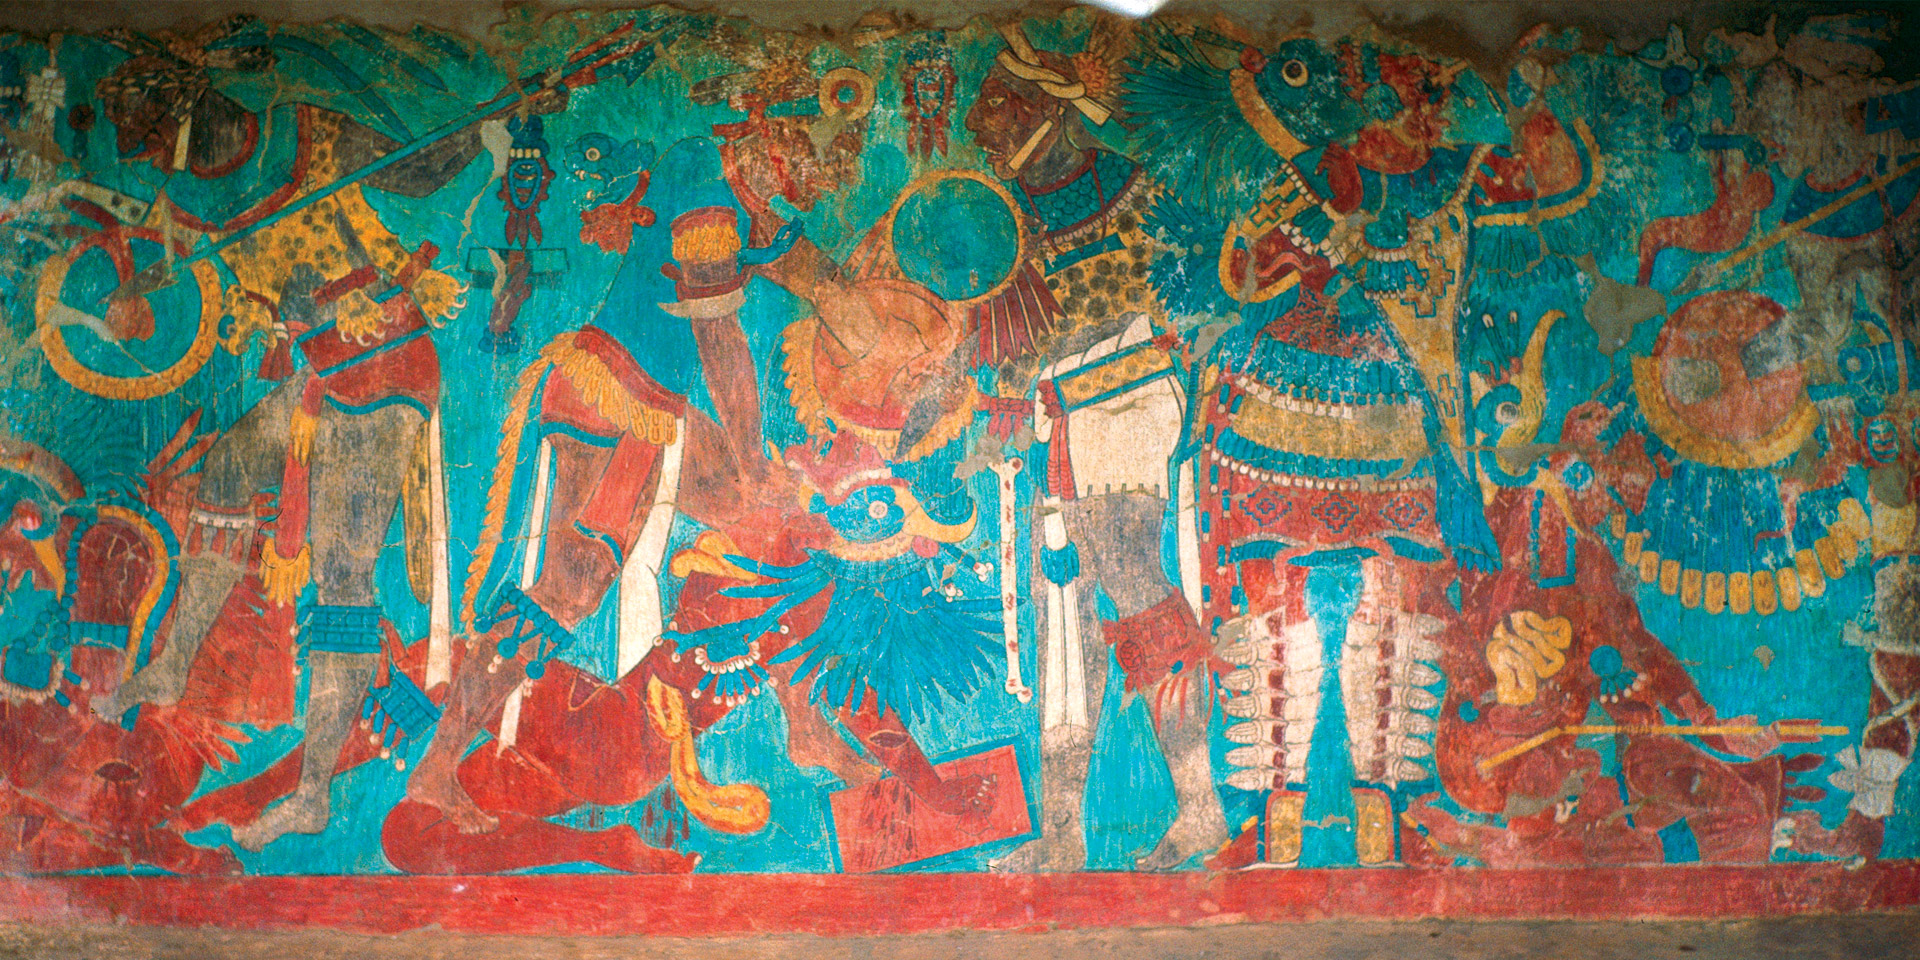 Mexico Tlaxcala Cacaxtla Mural Wikicommons Contours Travel